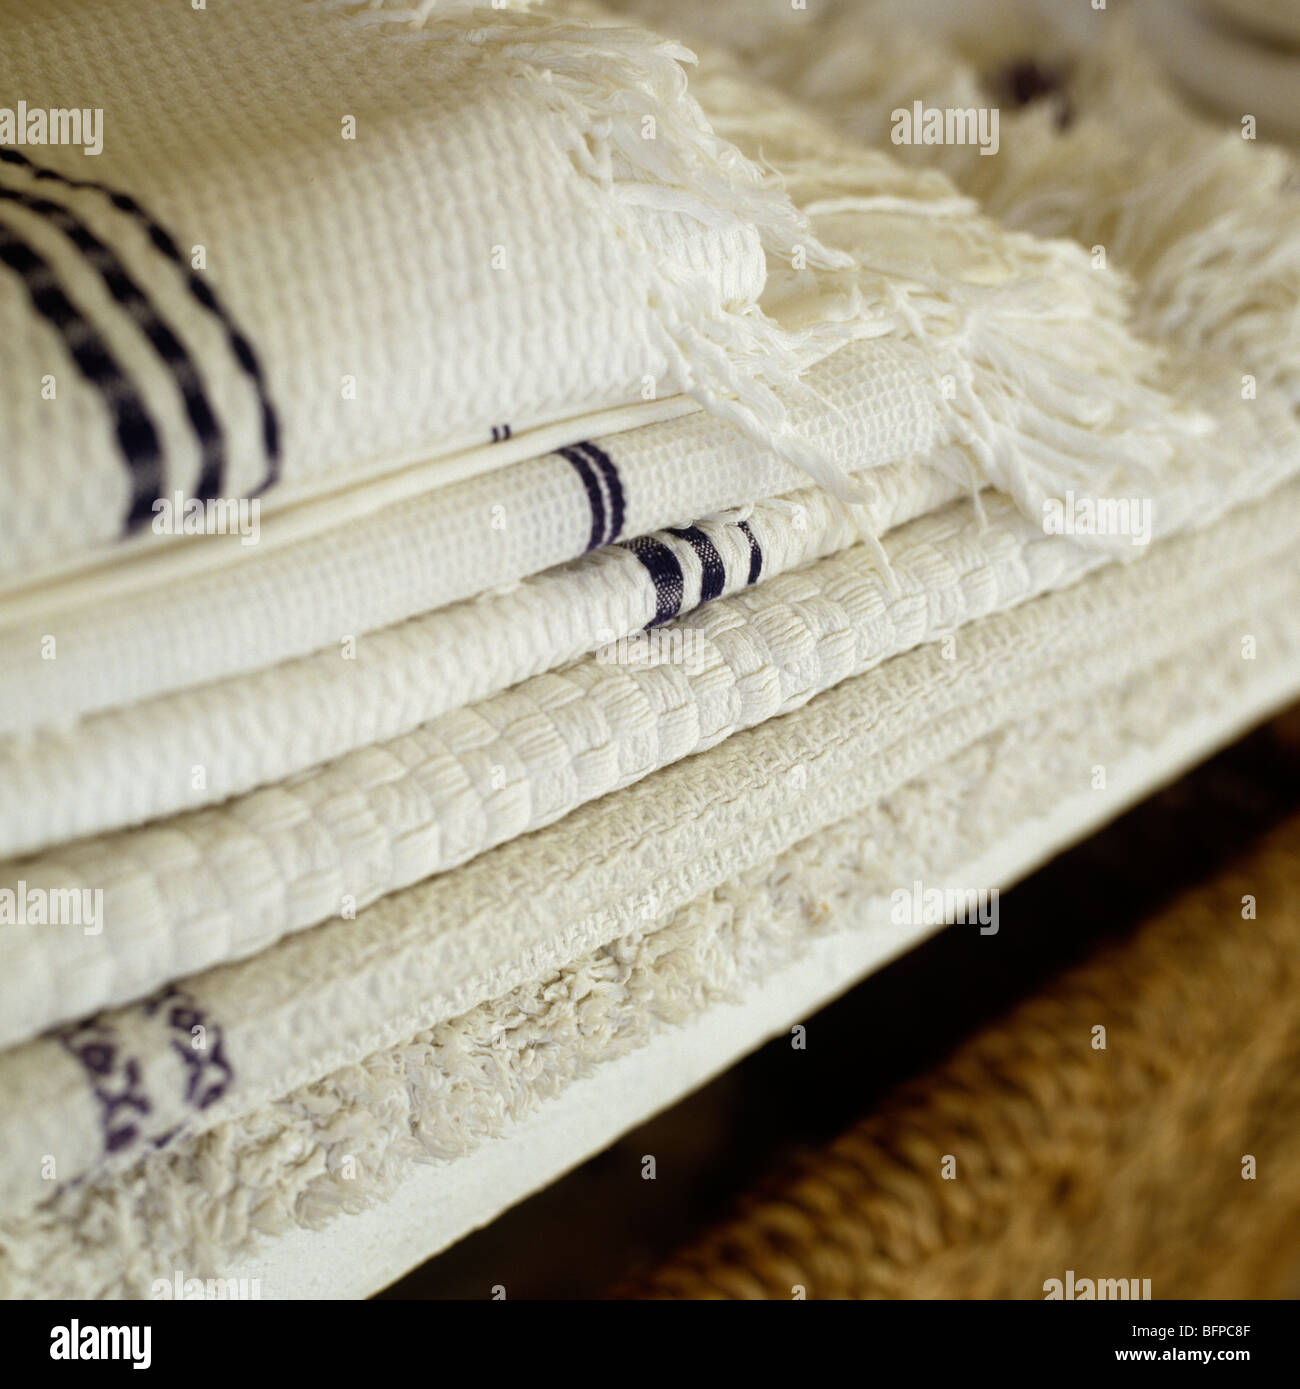 A pile of folded cotton towels and linen - Stock Image